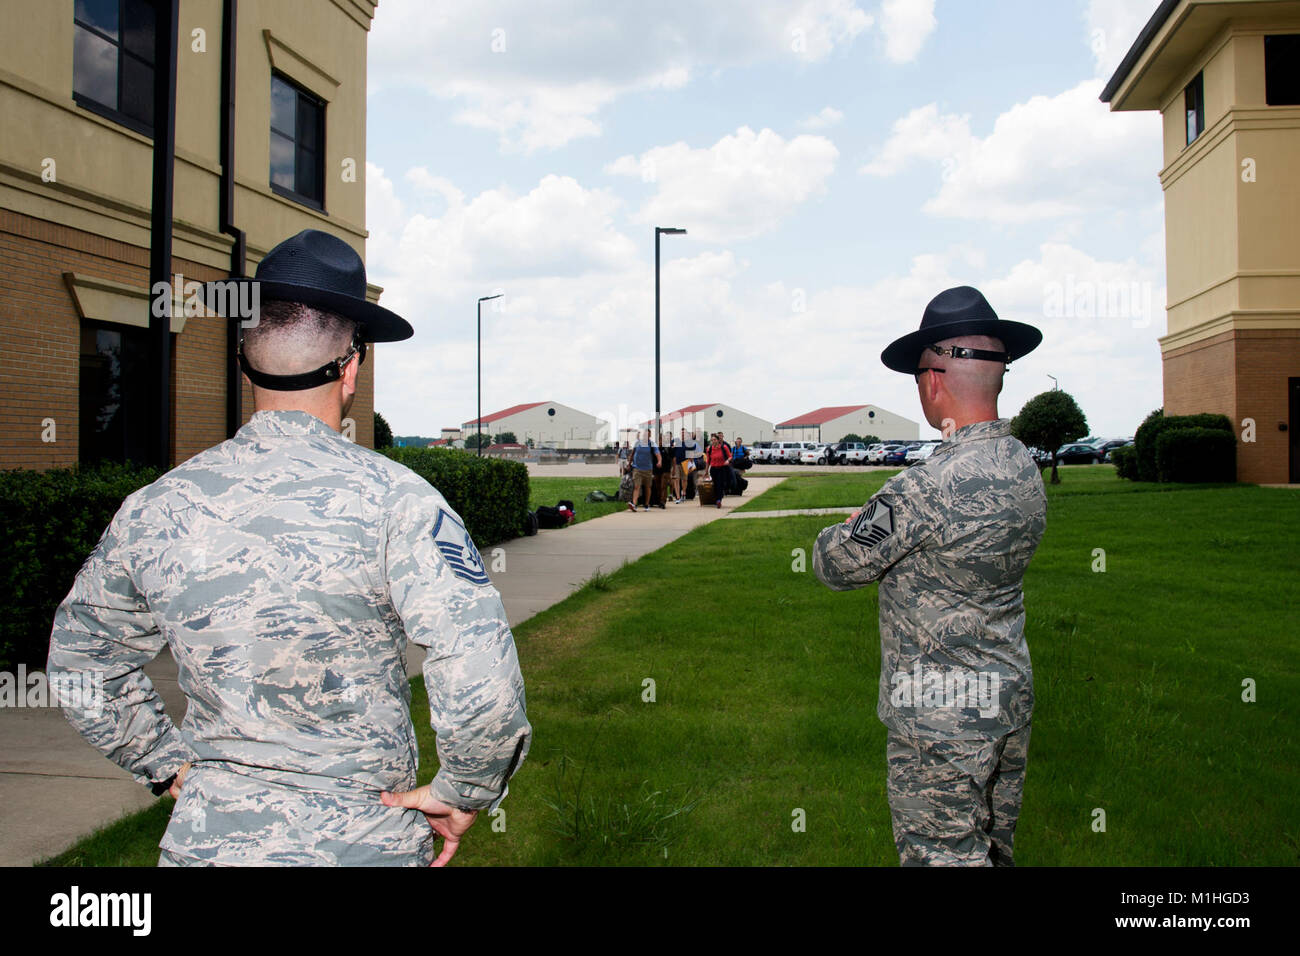 Officer training school stock photos officer training school stock images alamy - Military officer training school ...